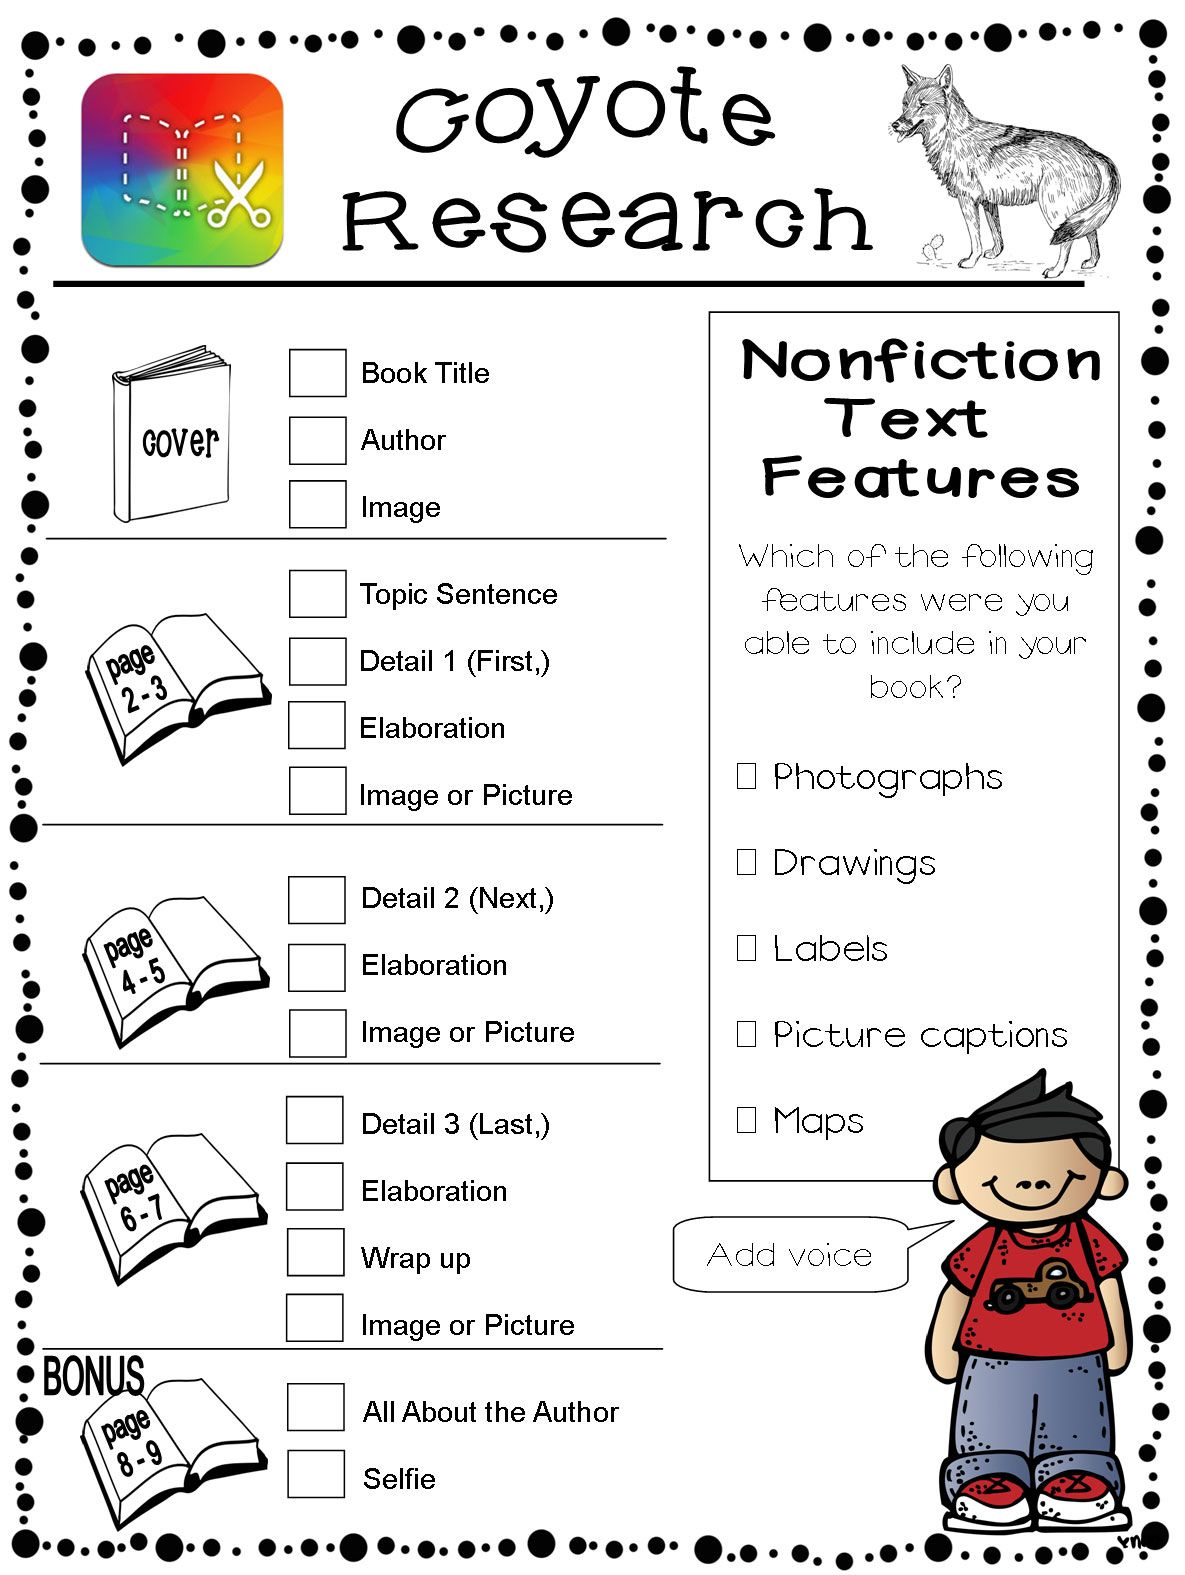 Informational Research And Book Creator With Images Book